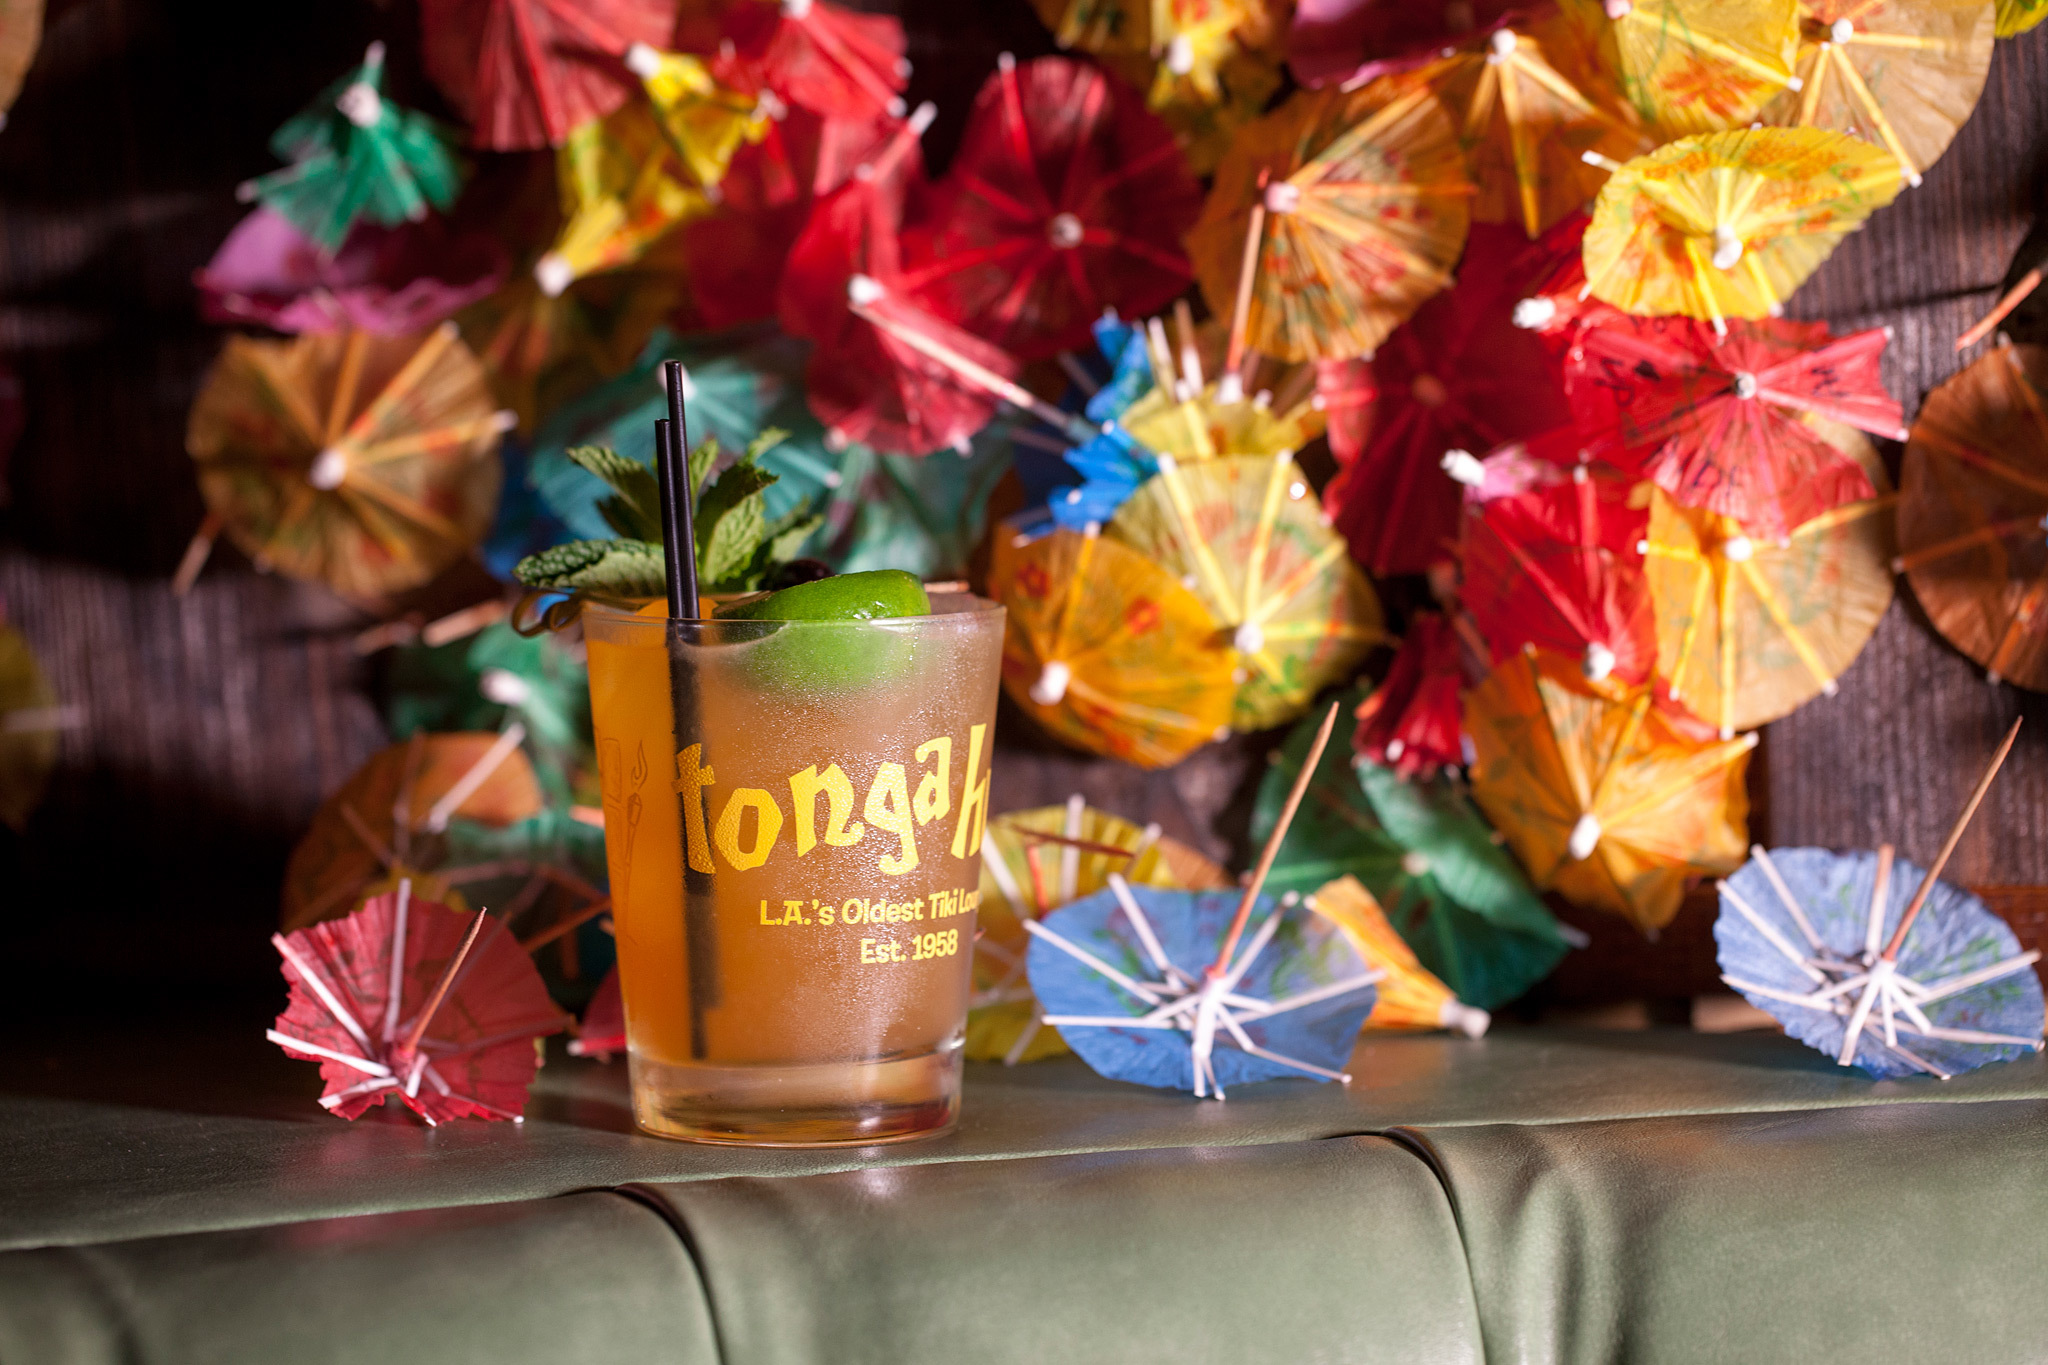 Tonga Hut tiki takeover at General Lee's